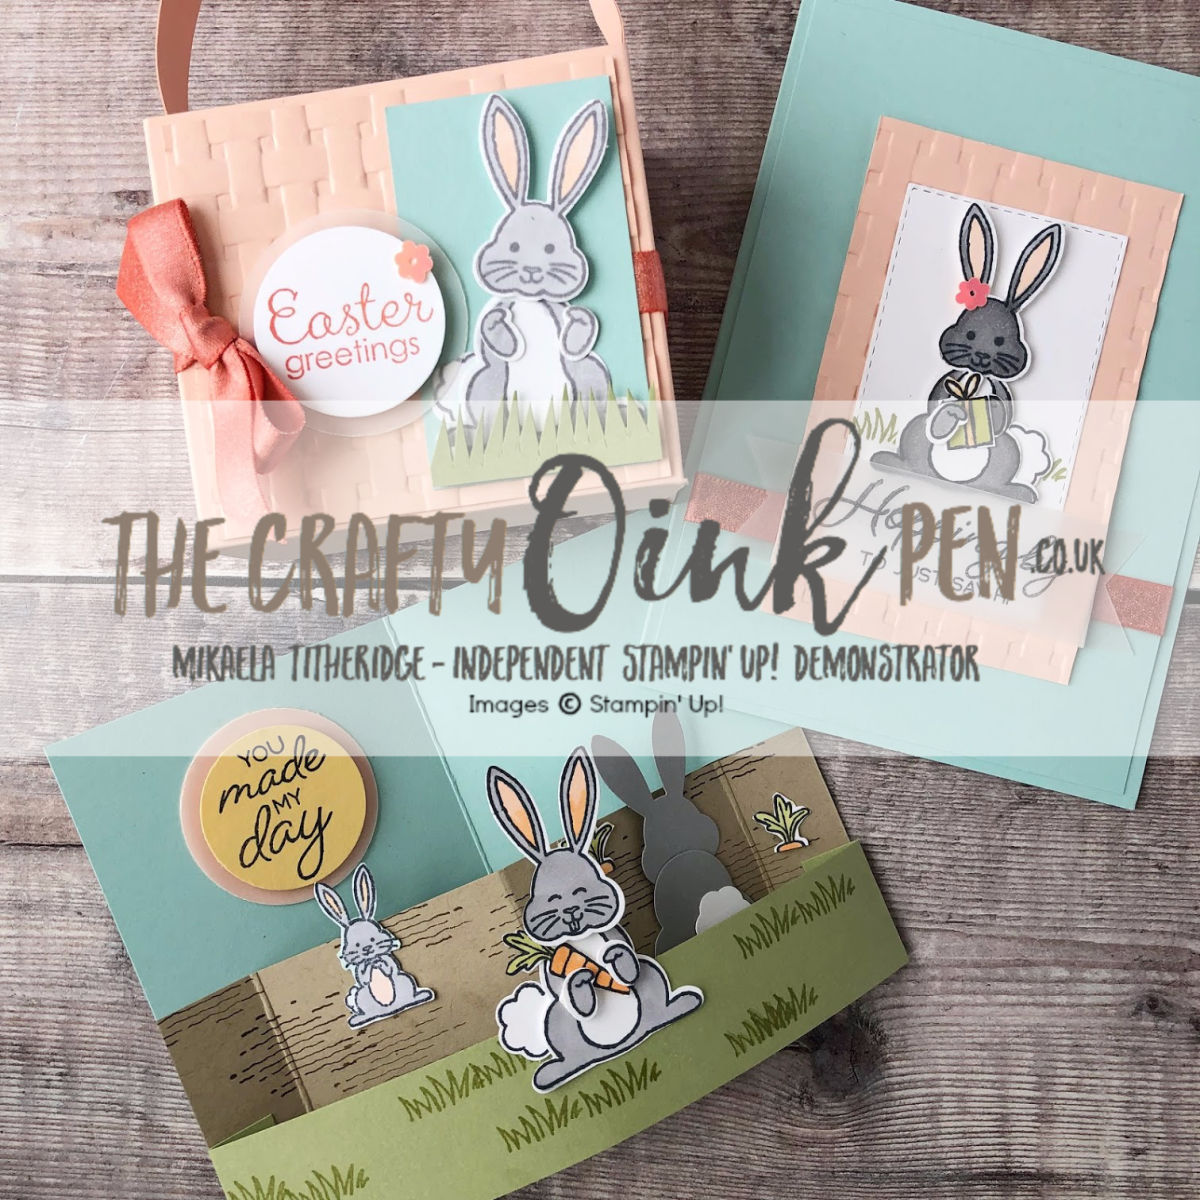 Best Bunny Class set by Artisan Design Team Member 2019, Mikaela Titheridge, UK Independent Stampin' Up! Demonstrator, The Crafty oINK Pen. Supplies available through my online store 24/7